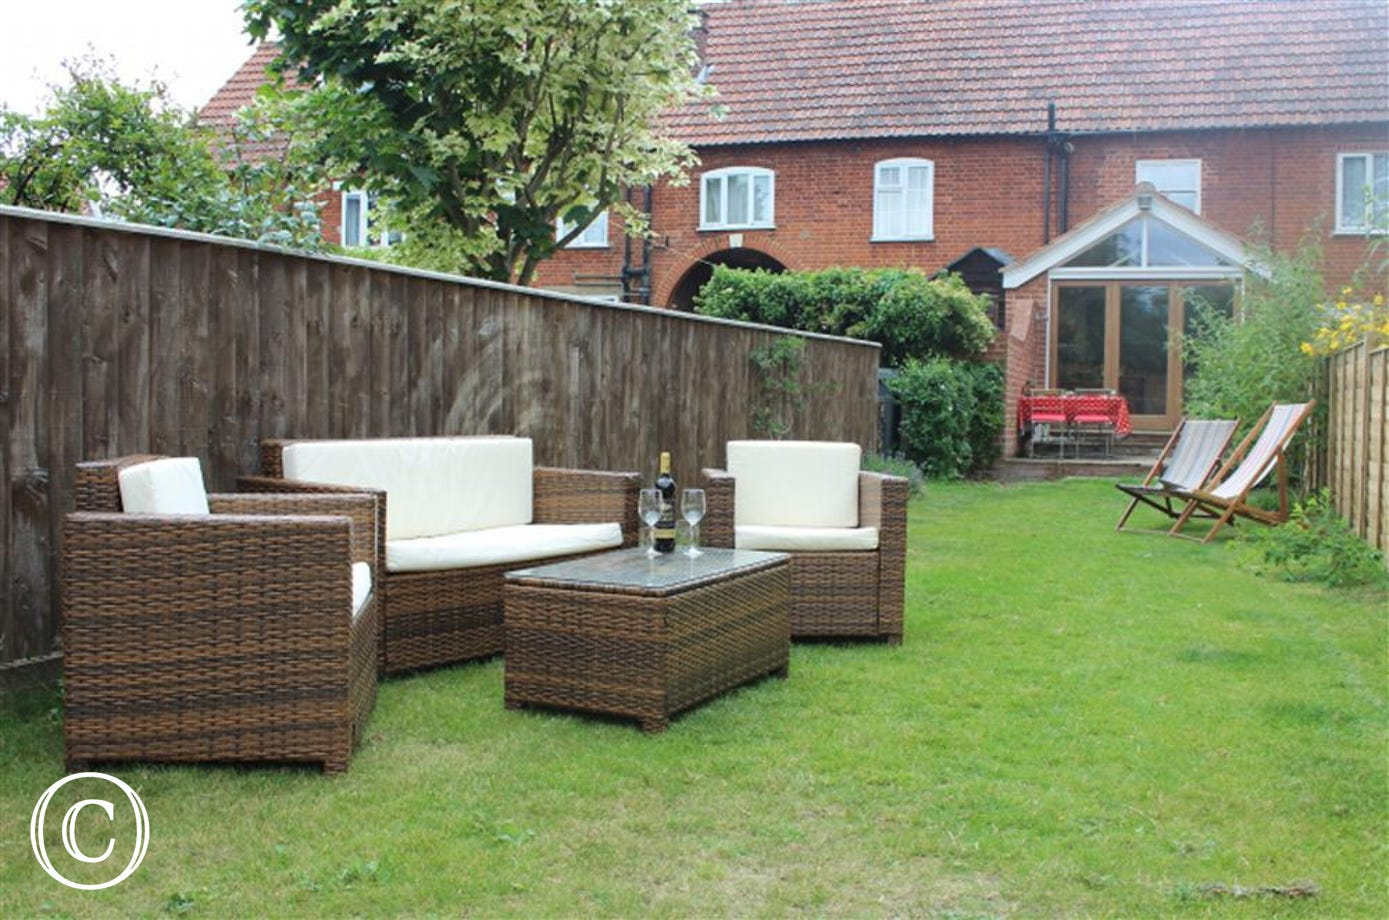 Use this ratton furniture to enjoy the outside garden space at The Fishermans Rest.